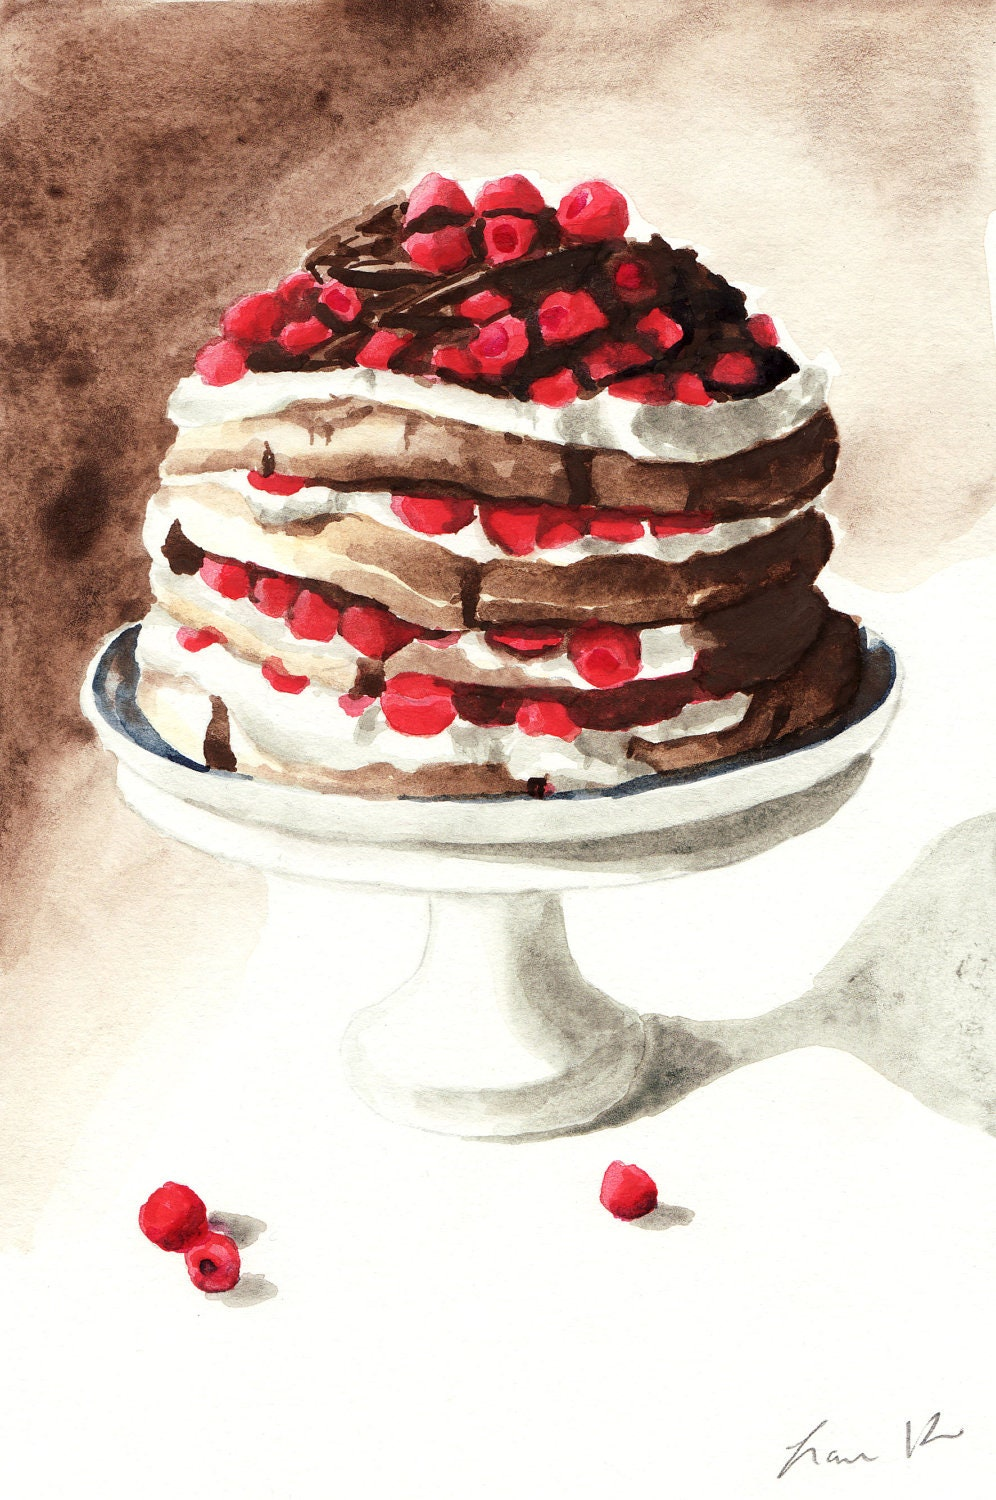 Items similar to Chocolate Raspberry Layer Cake on Pedestal Digital ...